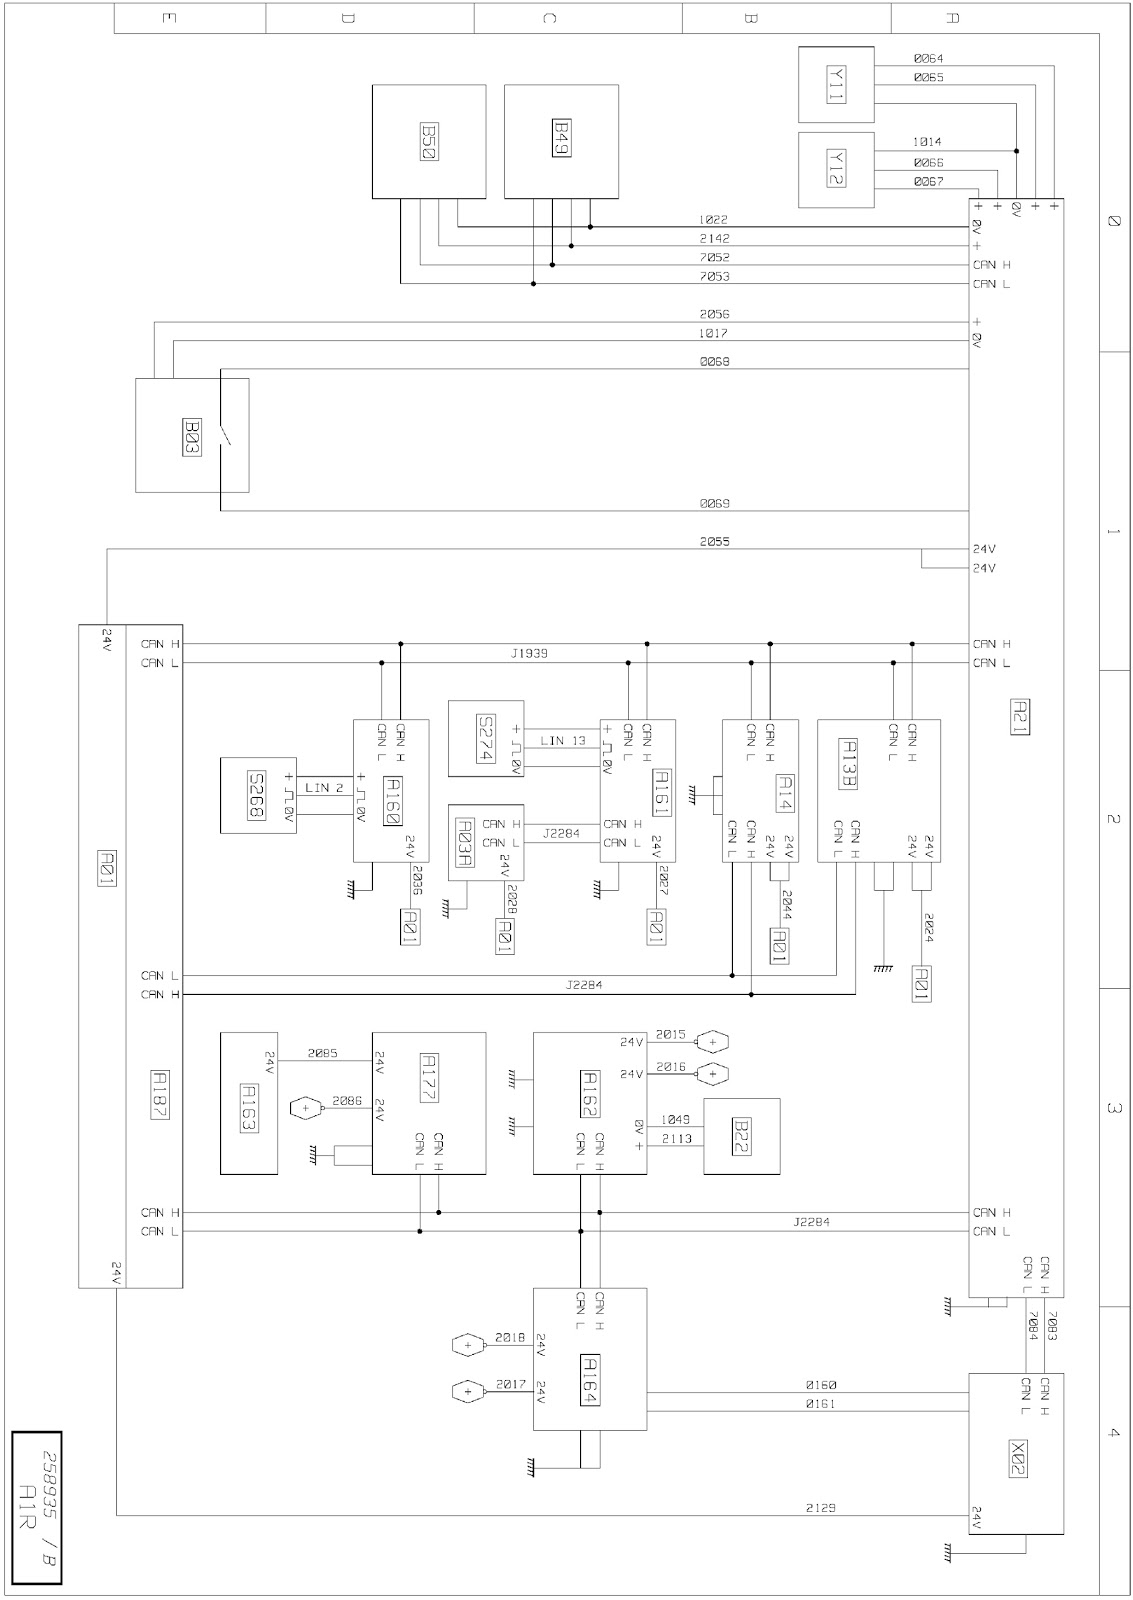 Braking Management Wiring Diagrams Renault Trucks T Euro Vi Diagram A01 Electric Distribution Unit In Cab A03a Main Information Display Cak A13b Robotized Transmission Ecu Cd1 A14 Engine Cc4 Cch